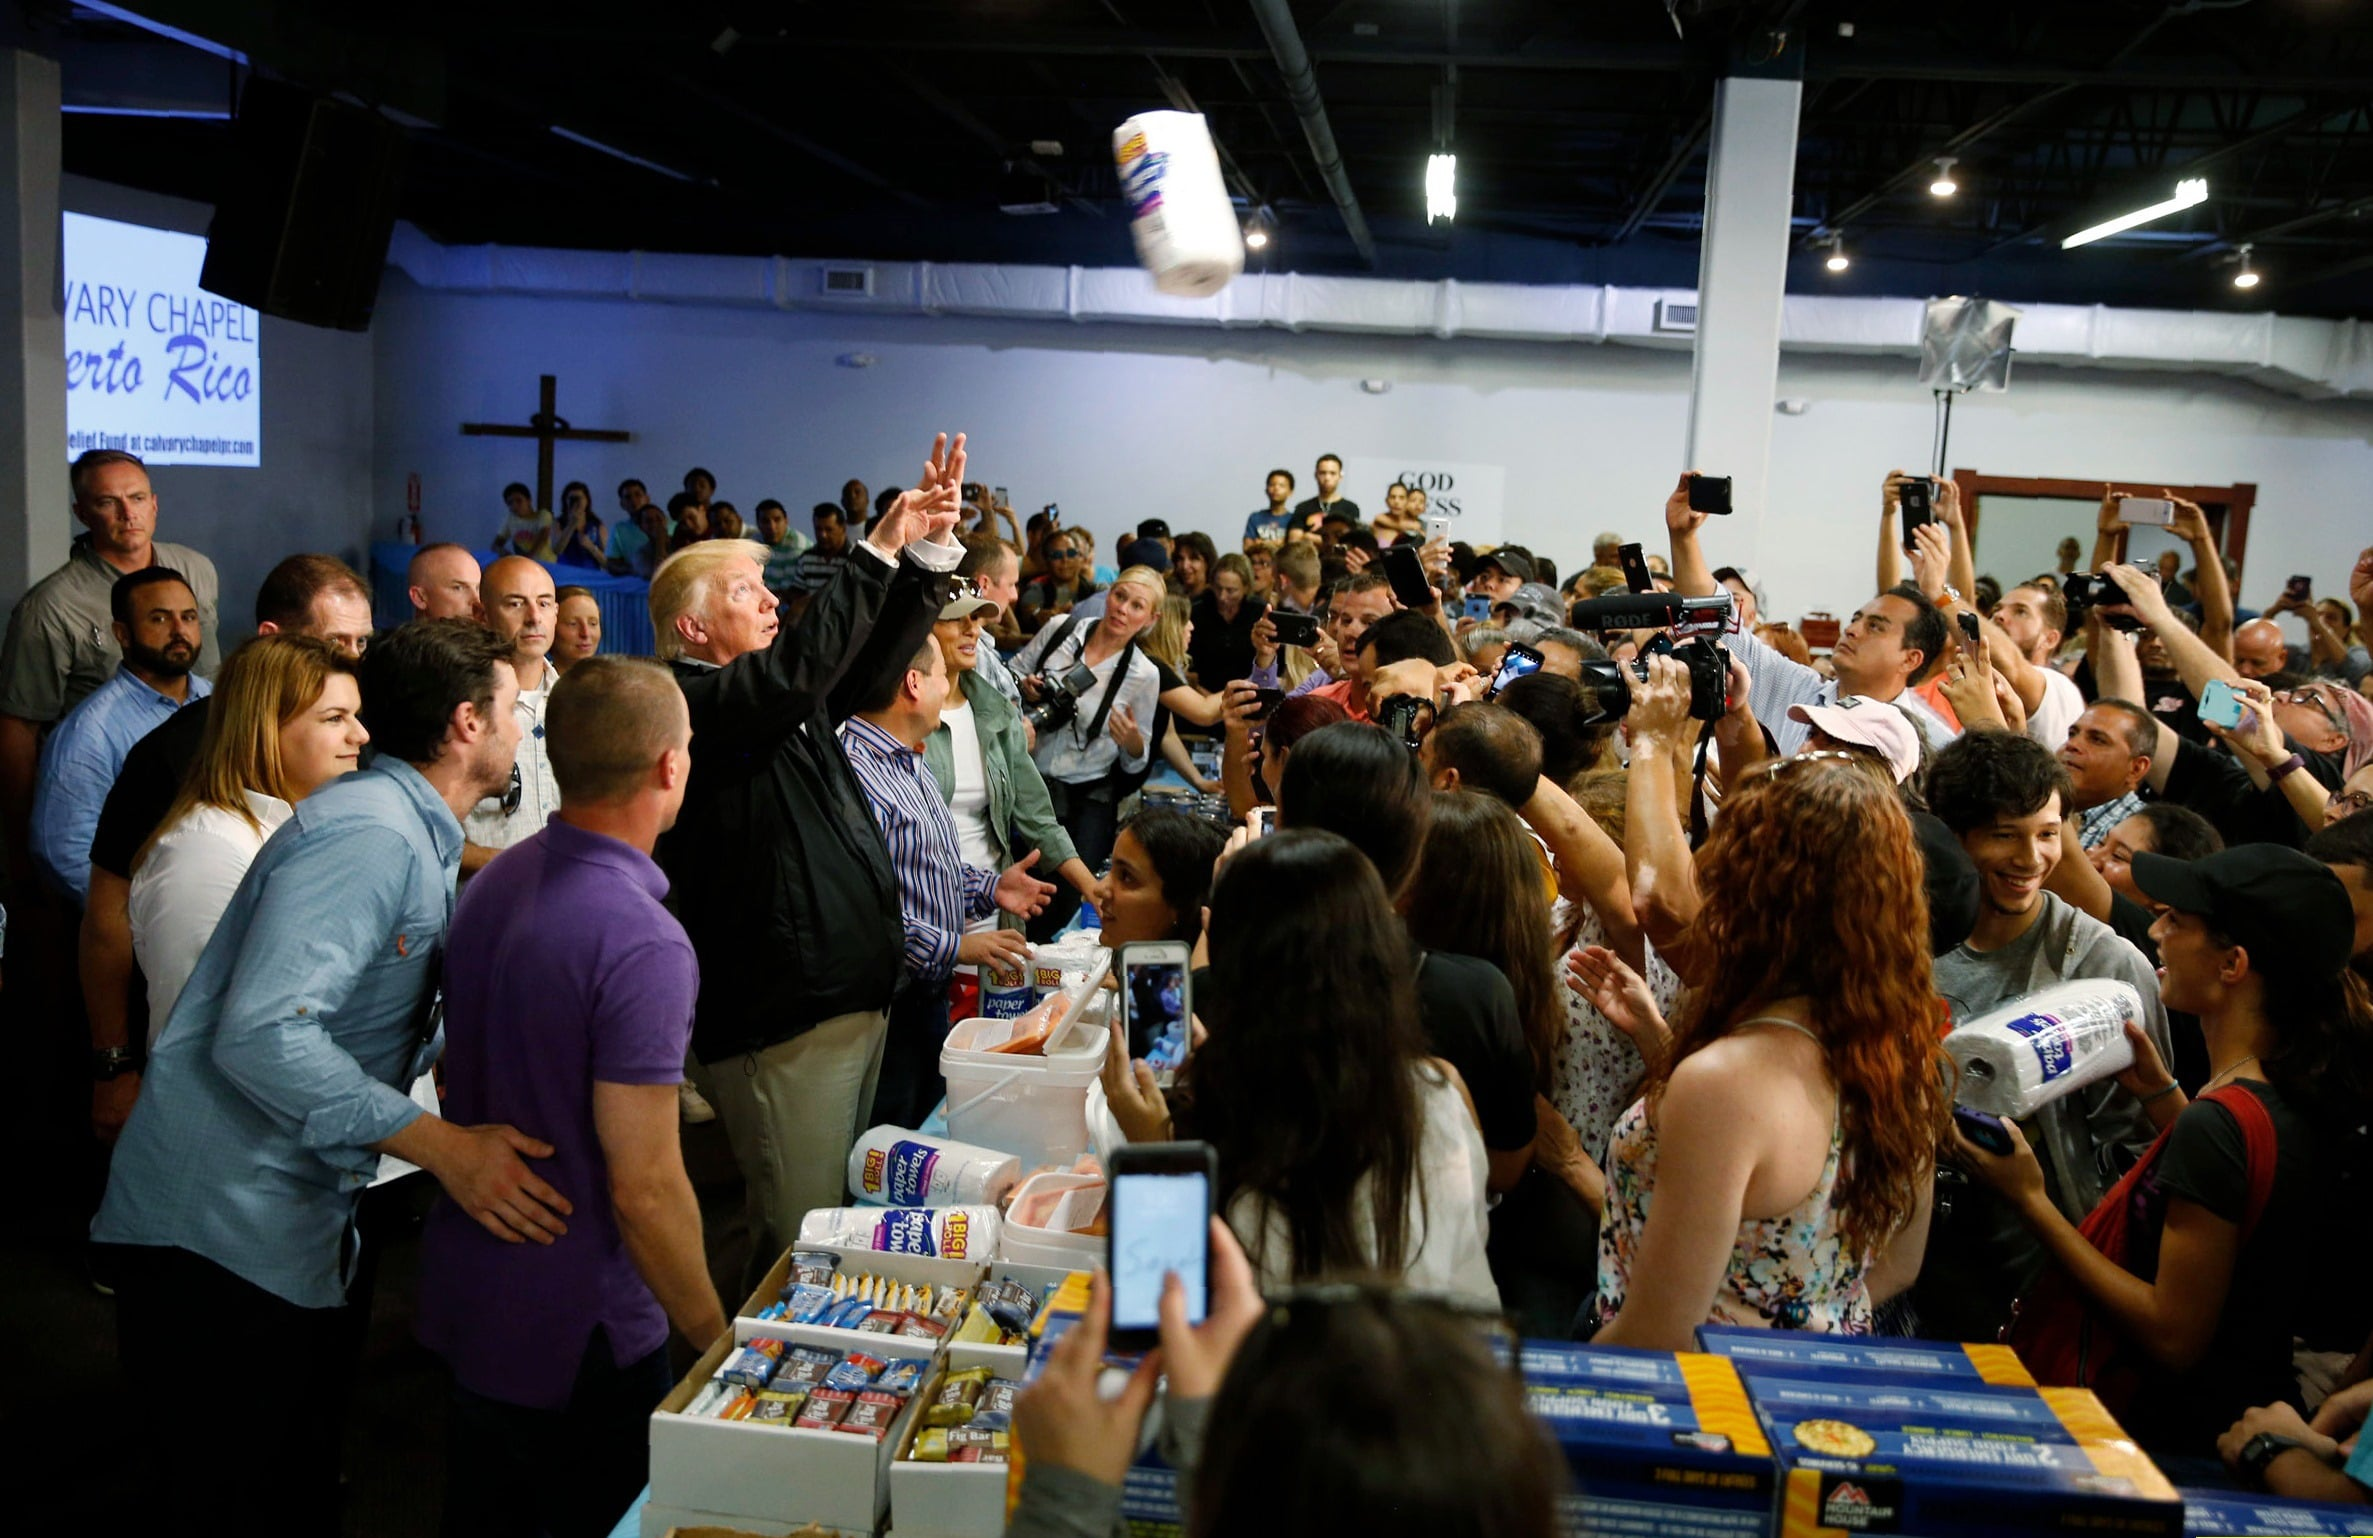 President Trump throws paper towels to residents gathered in a chapel while visiting areas damaged by Hurricane Maria in San Juan, Puerto Rico